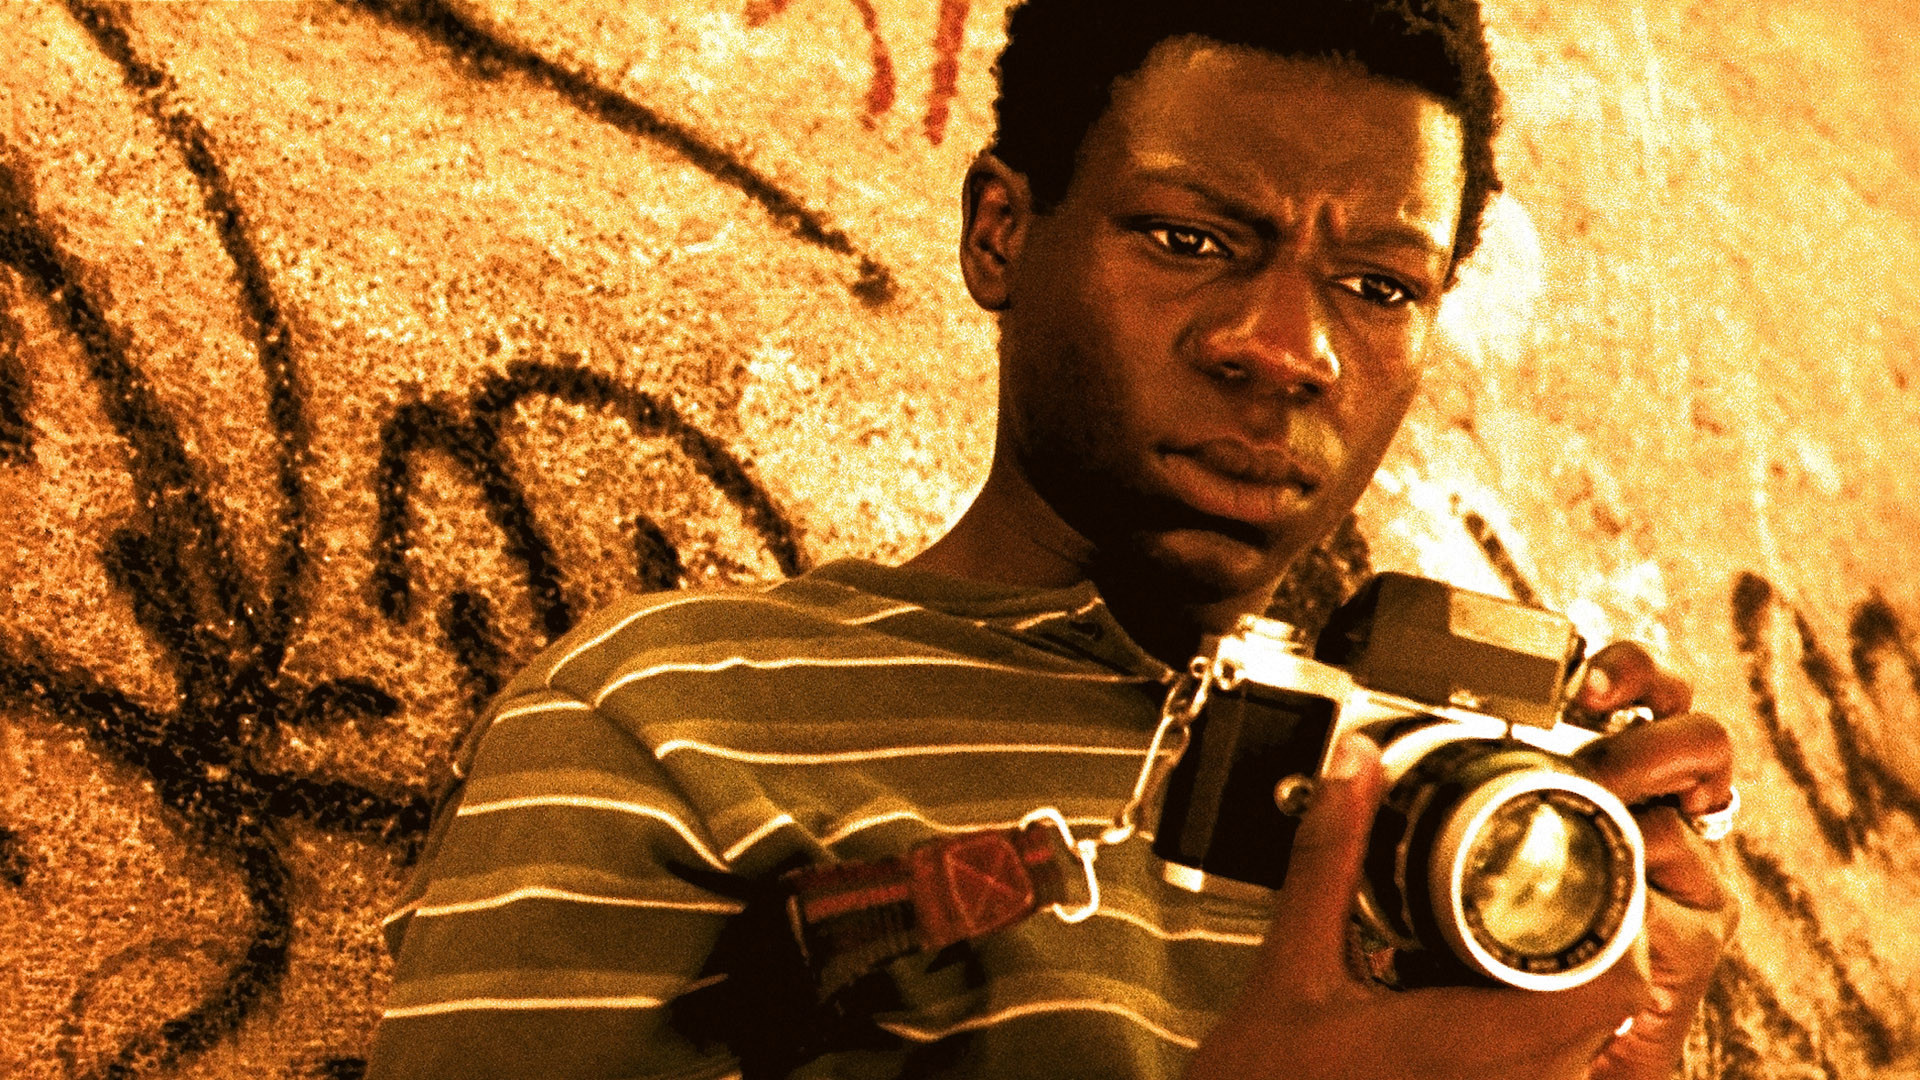 'City of God: 10 Years Later' and Four Other Must-See Films in Los Angeles